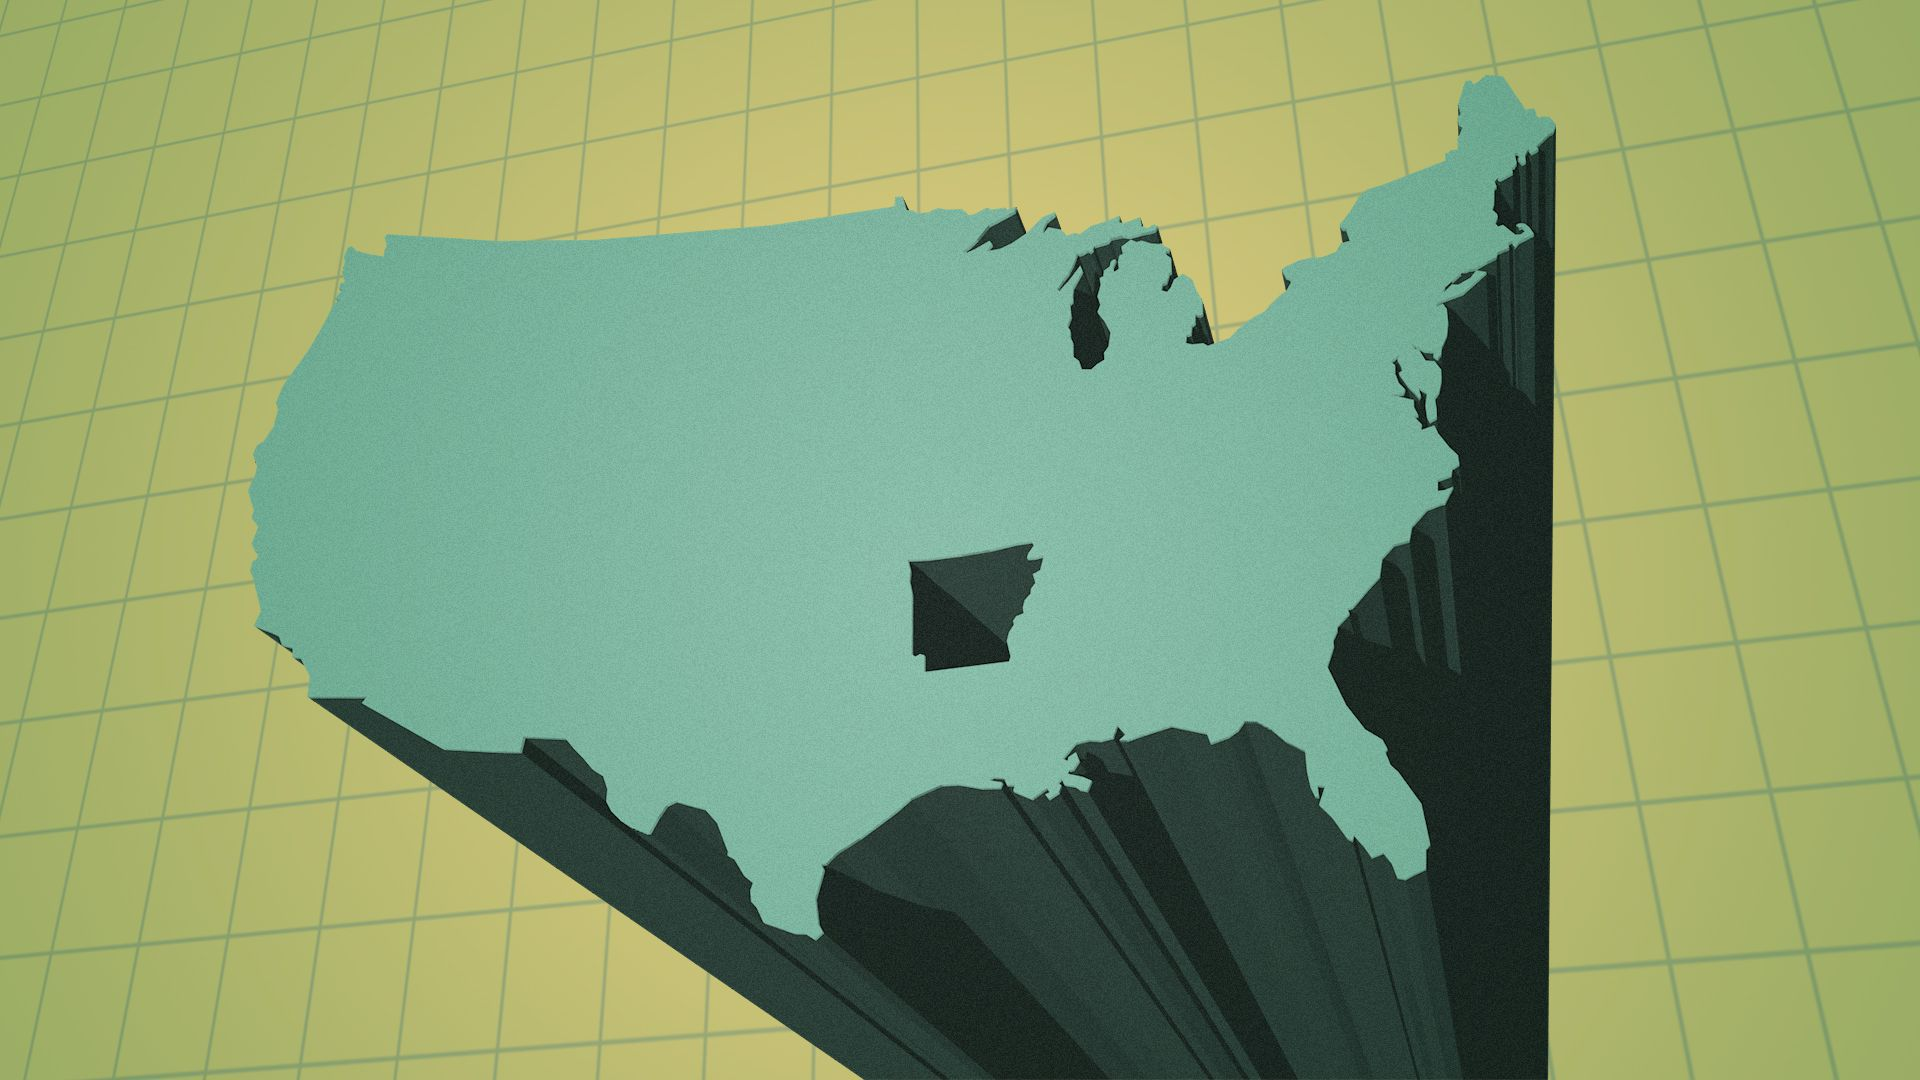 Illustration of the United States as a bar chart element extending into the foreground, leaving Arkansas behind.